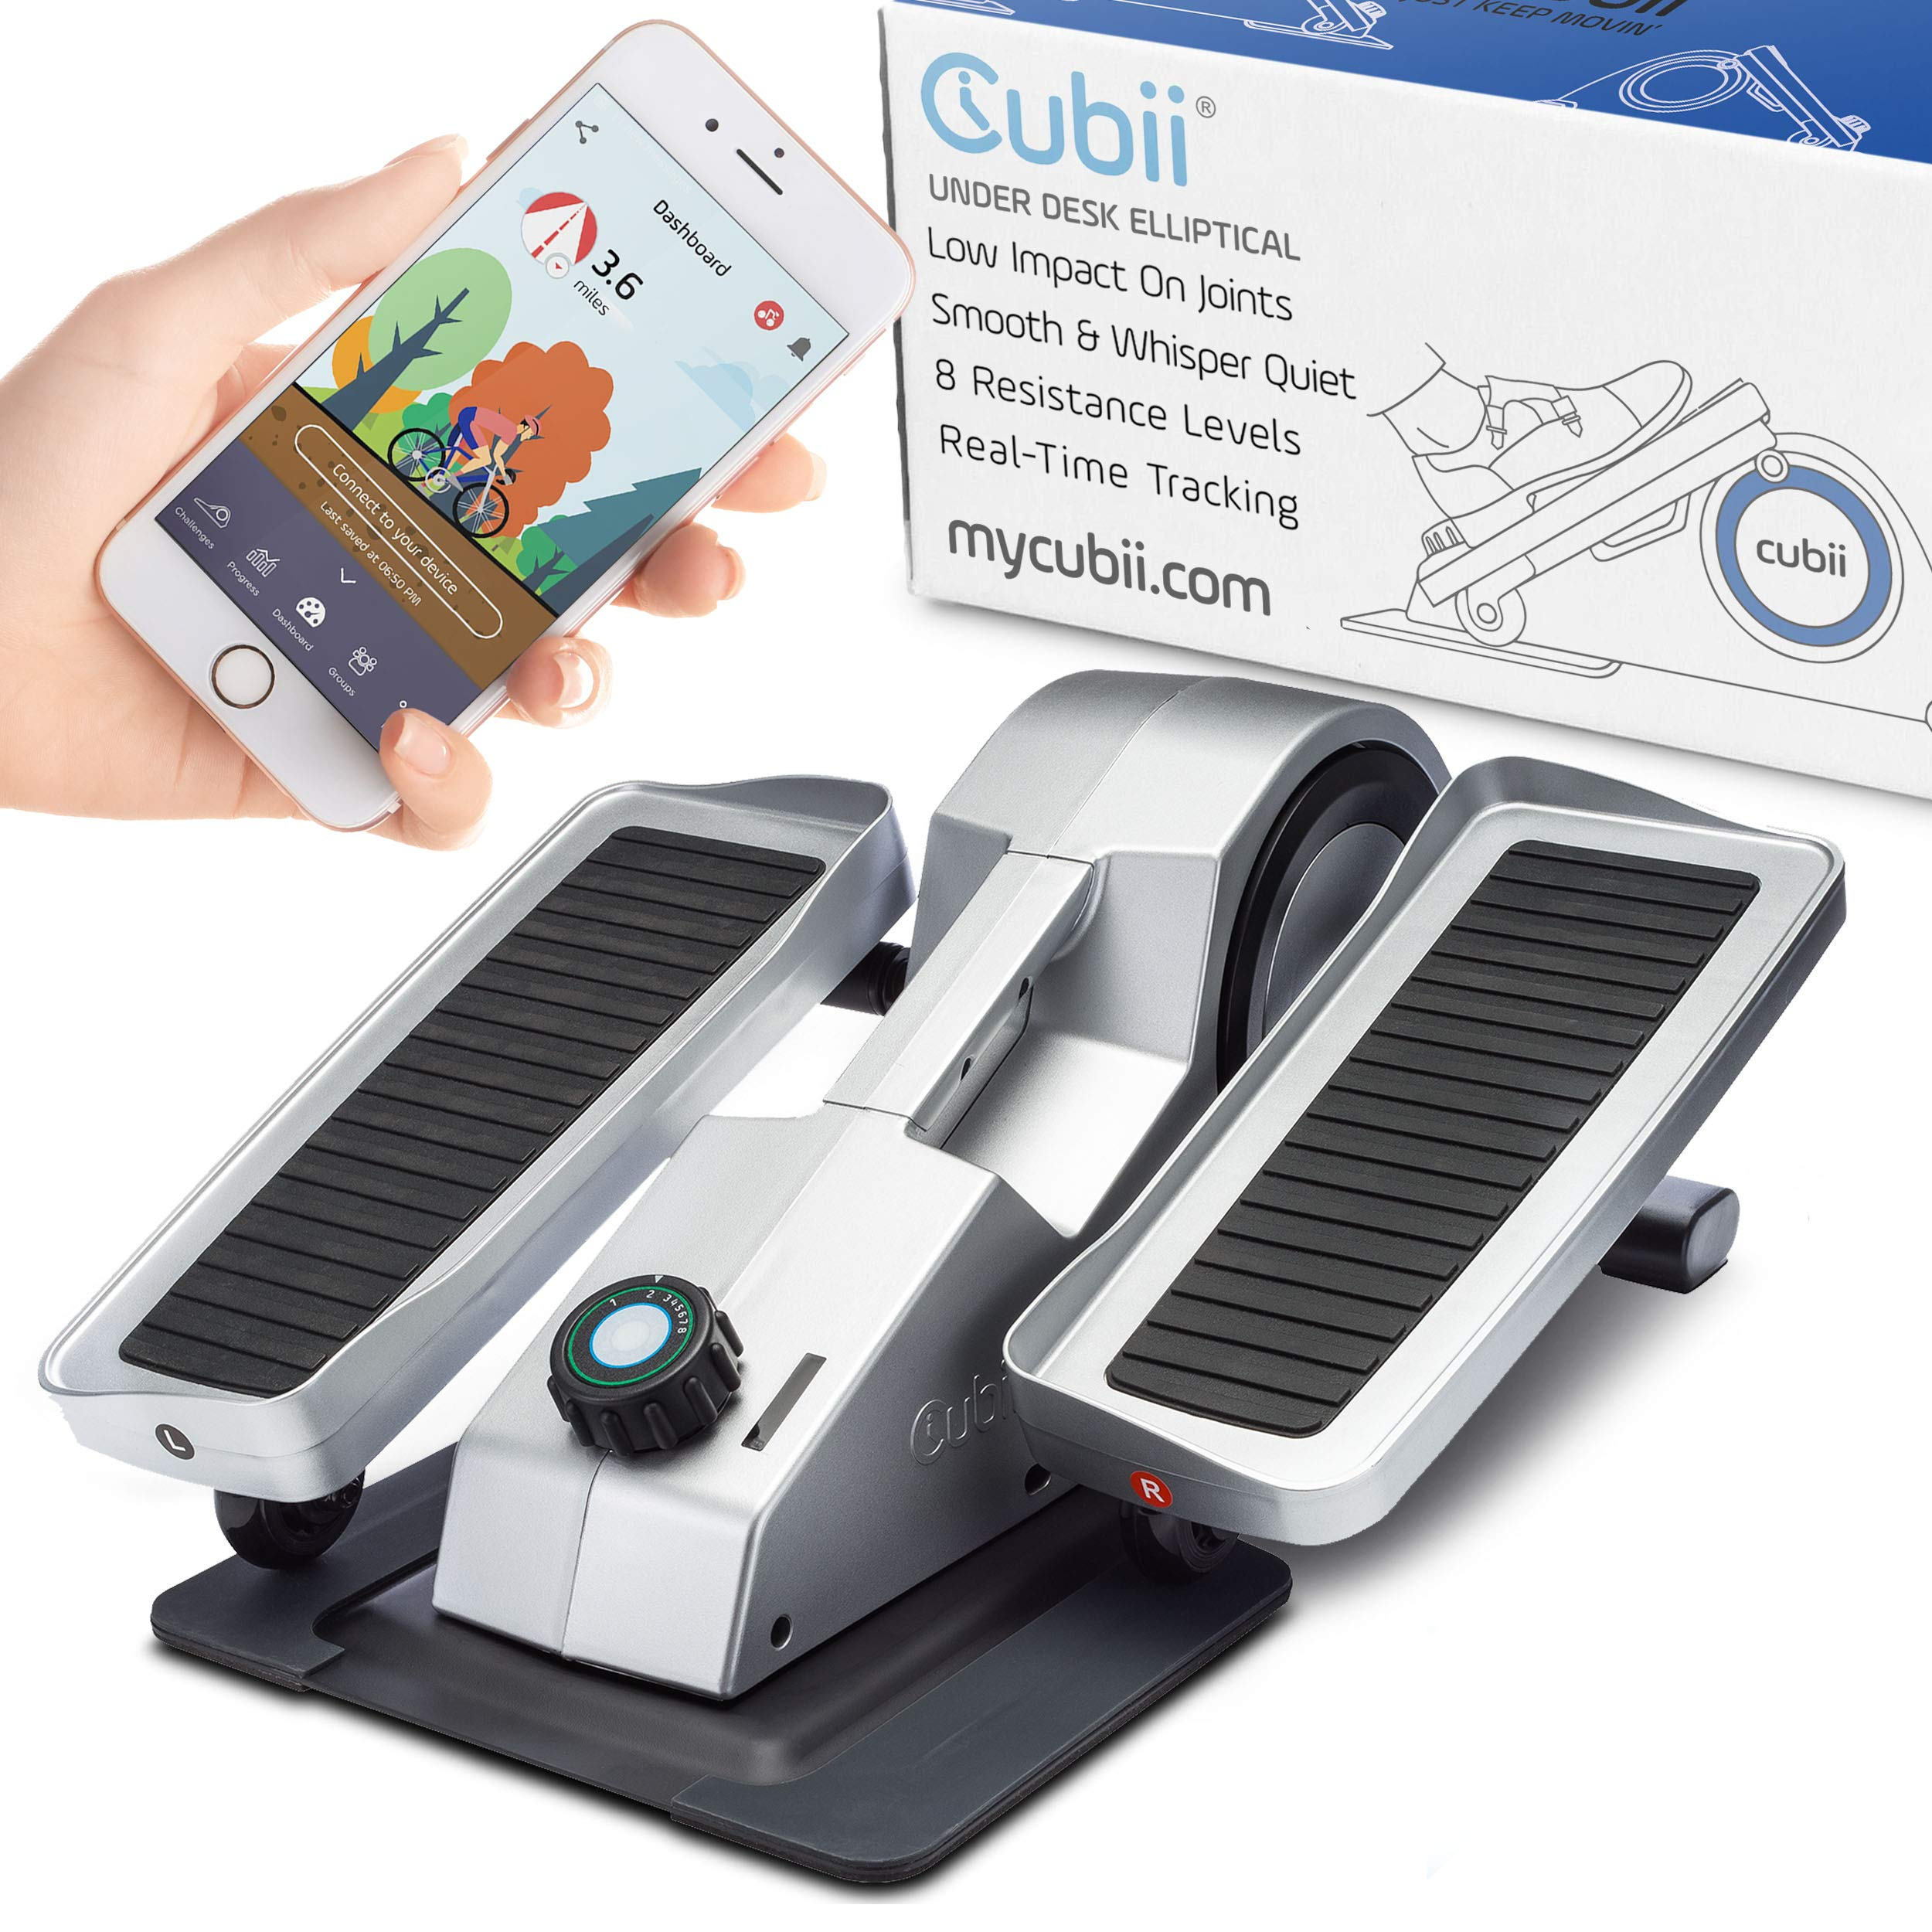 Cubii Under Desk Elliptical, Bluetooth Enabled, Sync w/ FitBit and HealthKit, Adjustable Resistance, Easy Assembly